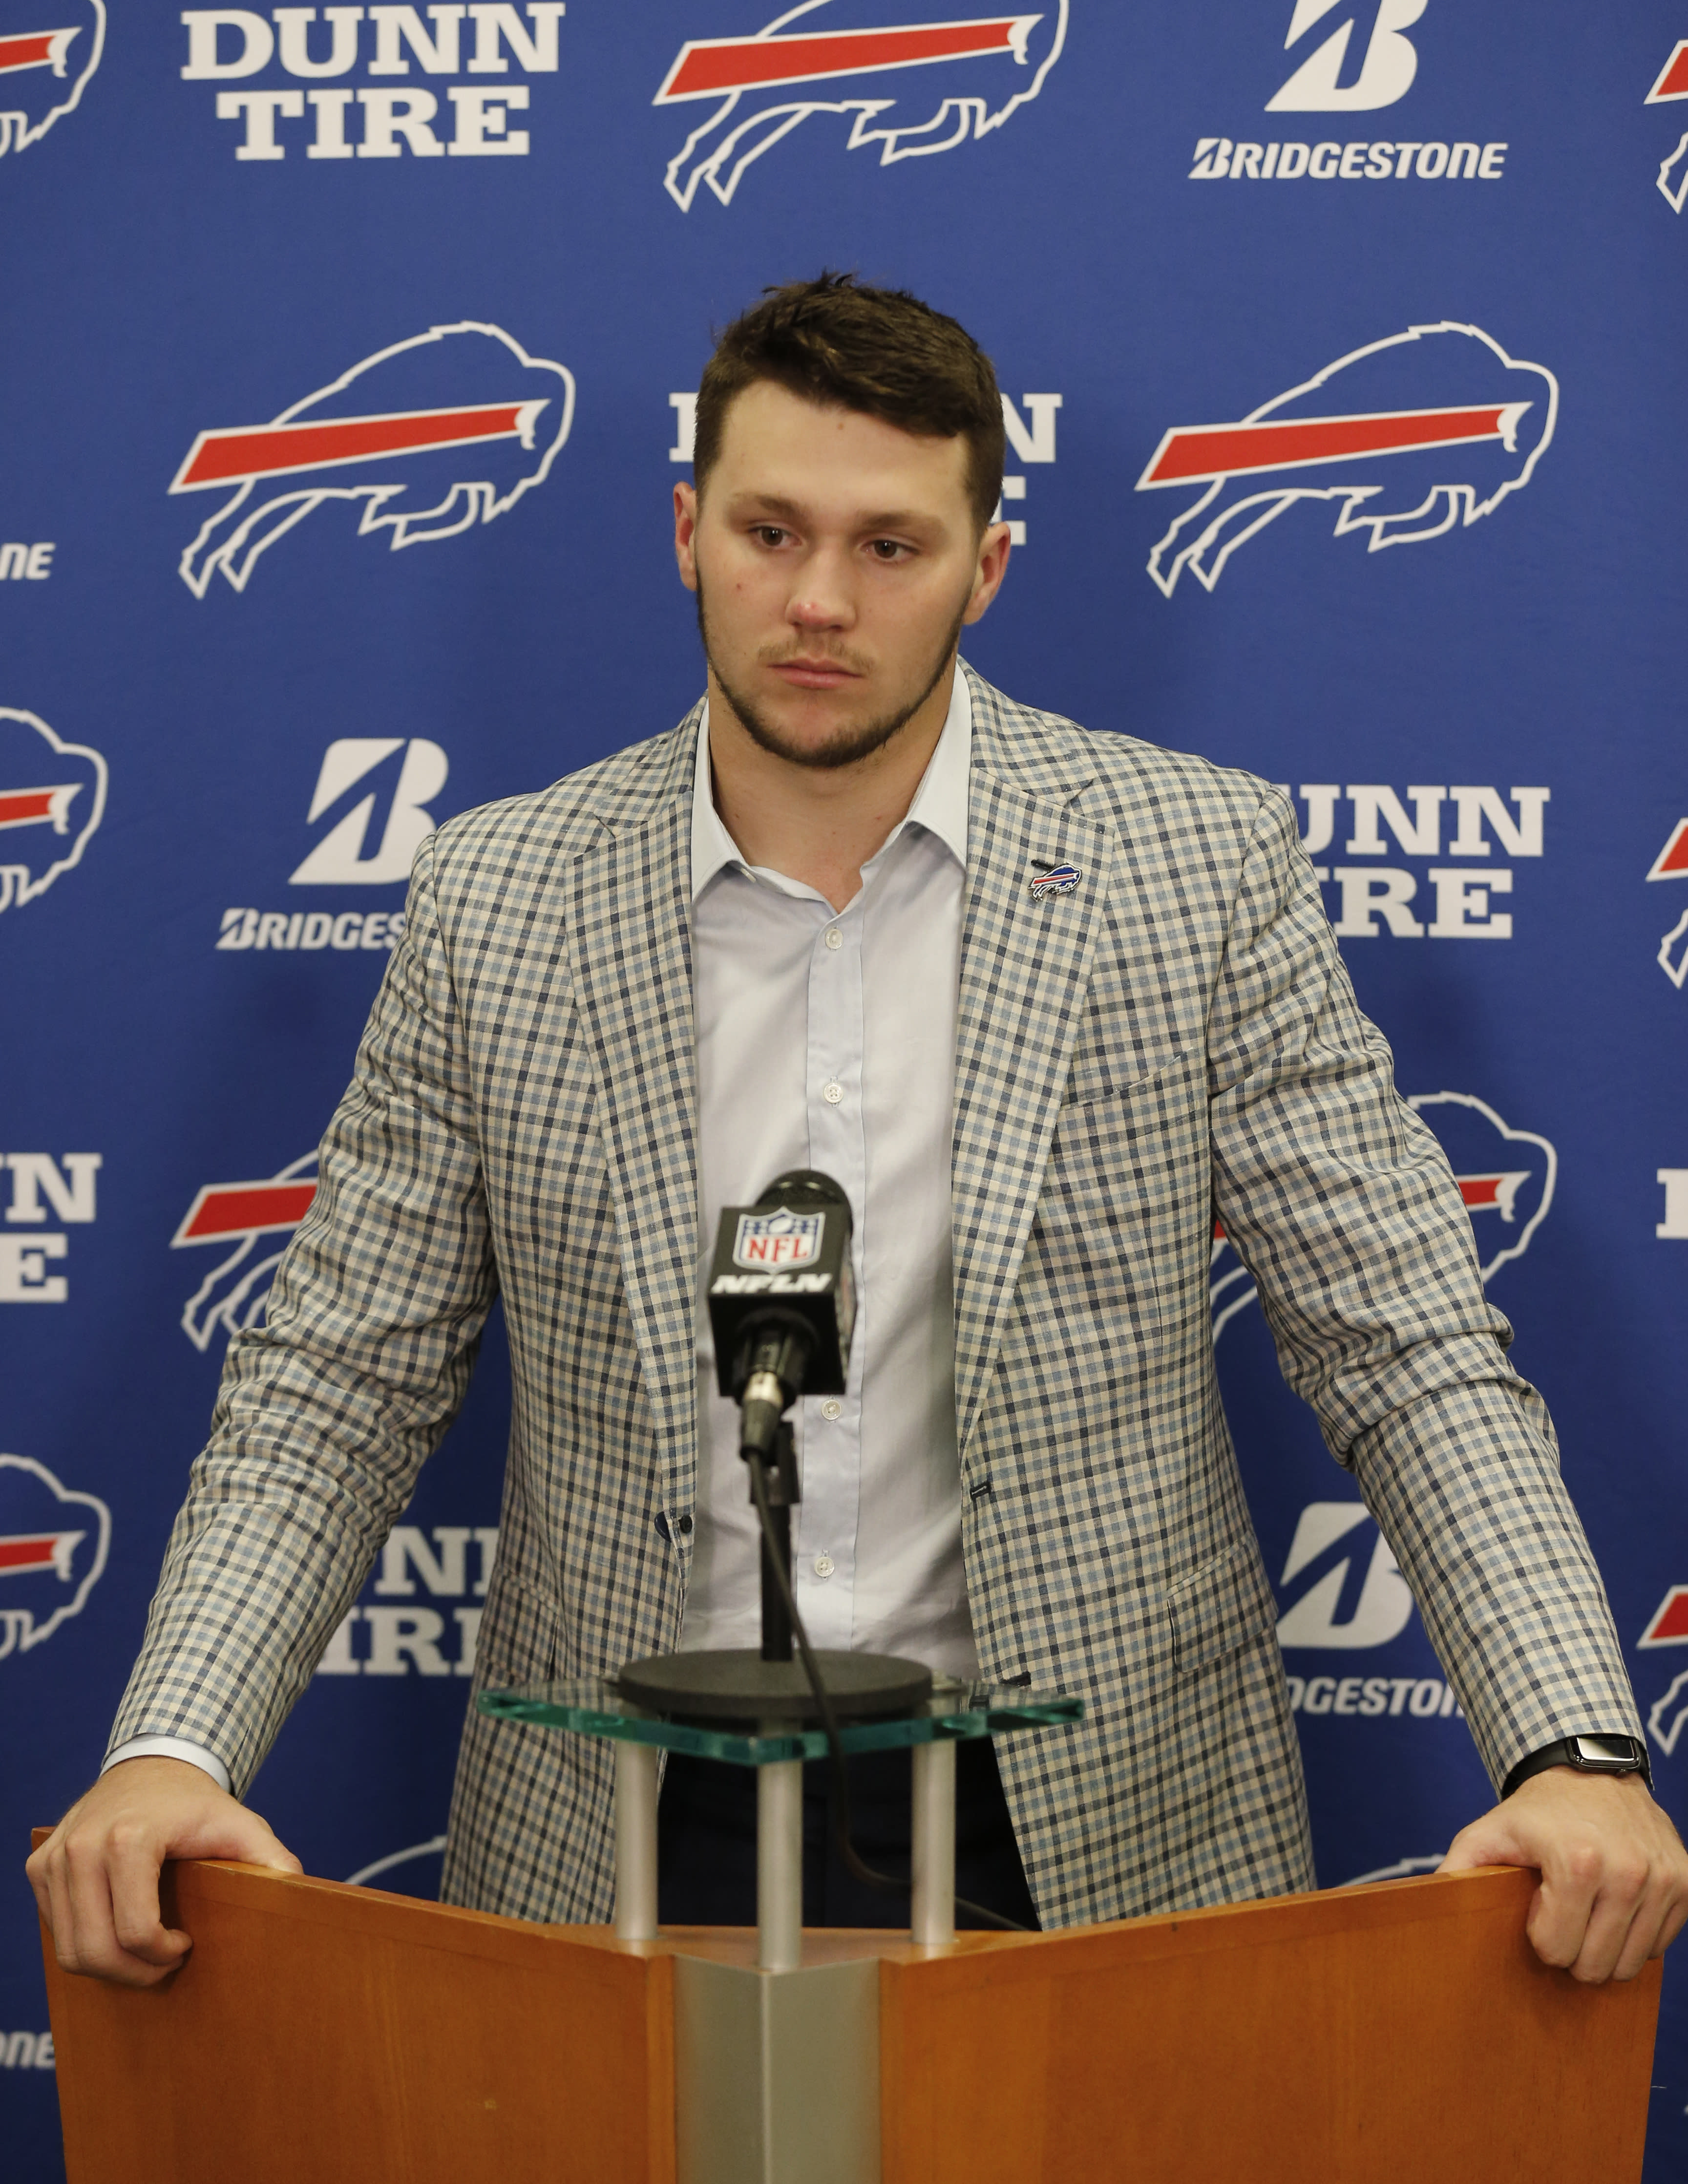 Buffalo Bills quarterback Josh Allen answers questions after the Cleveland Browns defeated his team in an NFL football game, Sunday, Nov. 10, 2019, in Cleveland. (AP Photo/Ron Schwane)